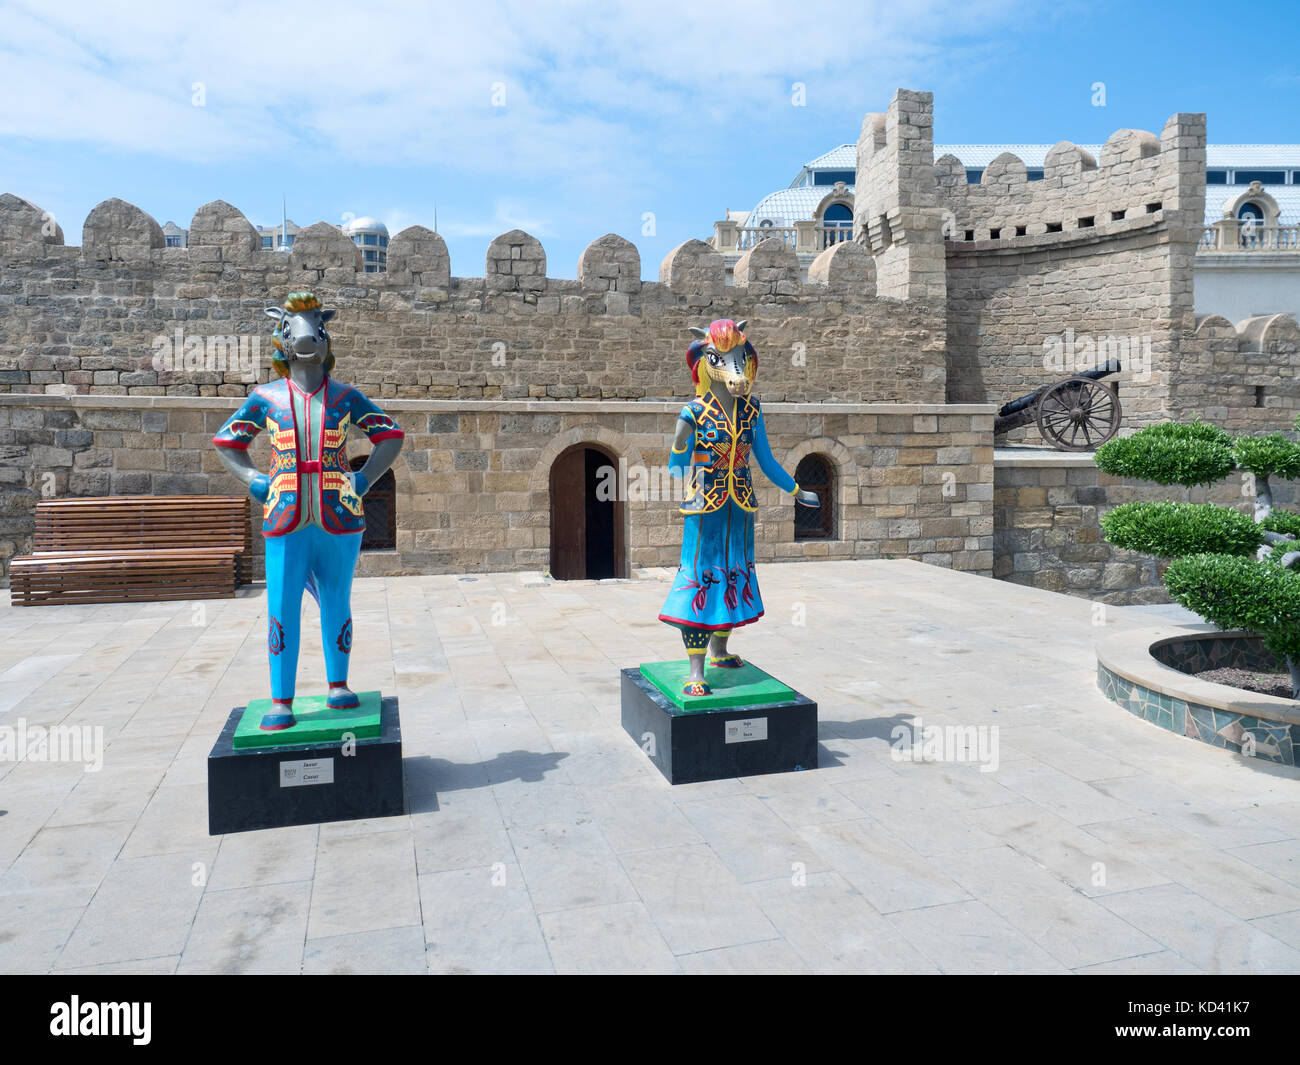 Baku, Azerbaijan - May 18, 2017 : 4th Islamic Solidarity Games mascots next to Old City walls - Stock Image